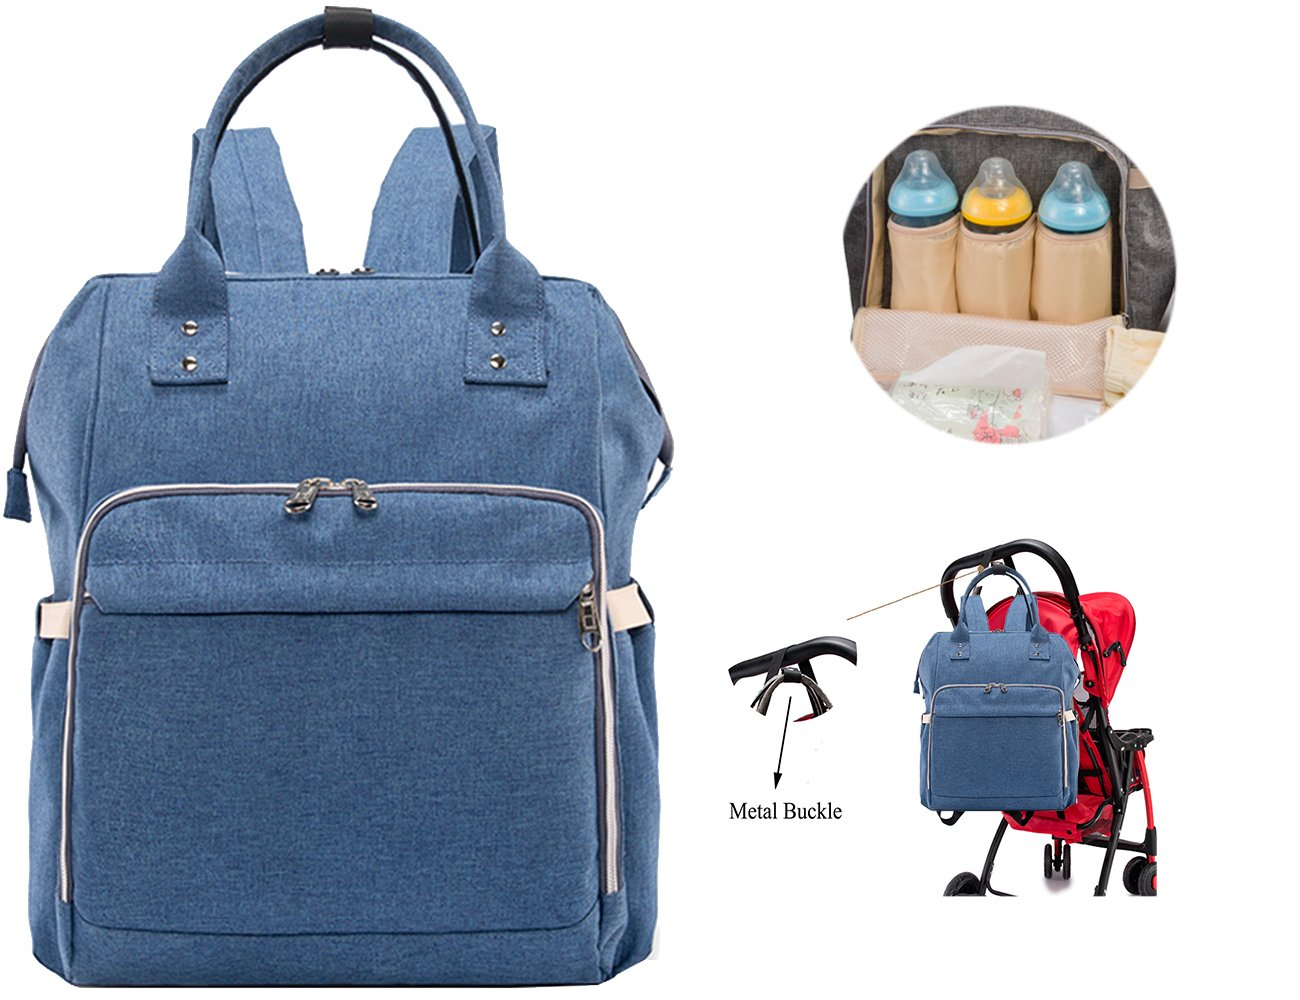 11c540ab23e1 iSuperb Diaper Bag Multi-Function Large Baby Nappy Changing Bag Carry On  Shoulder Bag with Insulated Pockets Waterproof Fabric Backpack (Linen Blue)